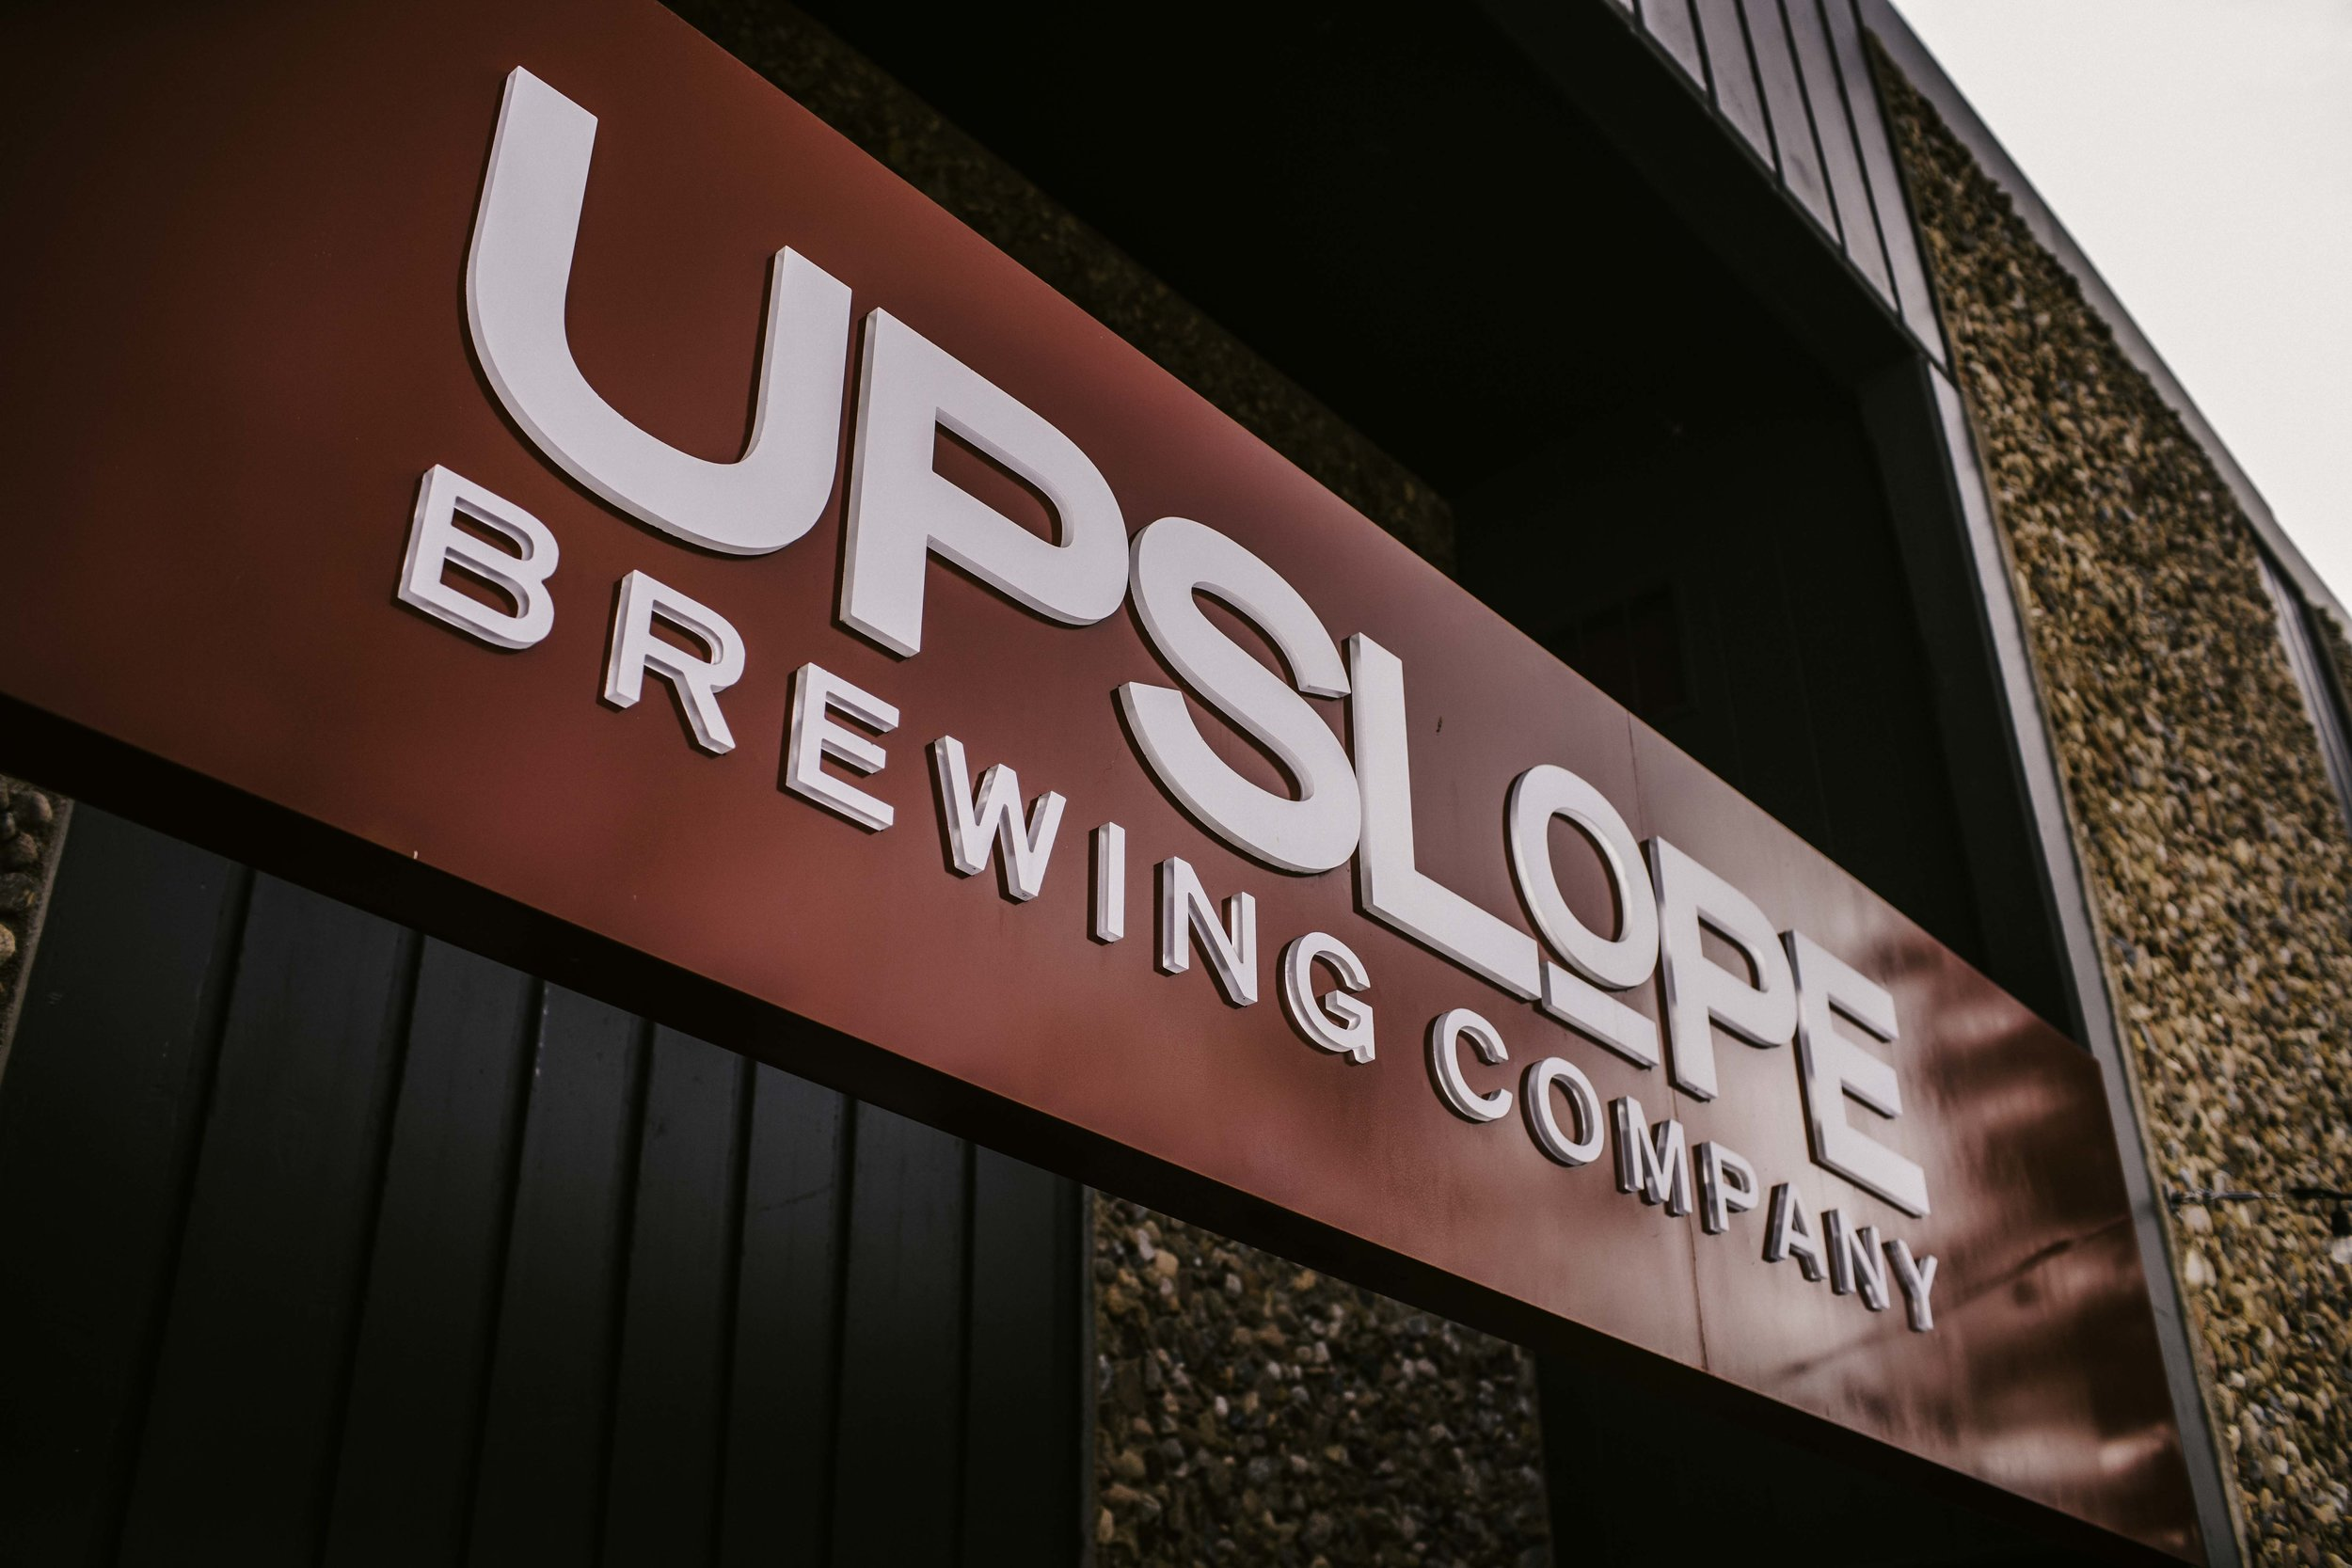 Upslope Brewing Company, Boulder, Colorado